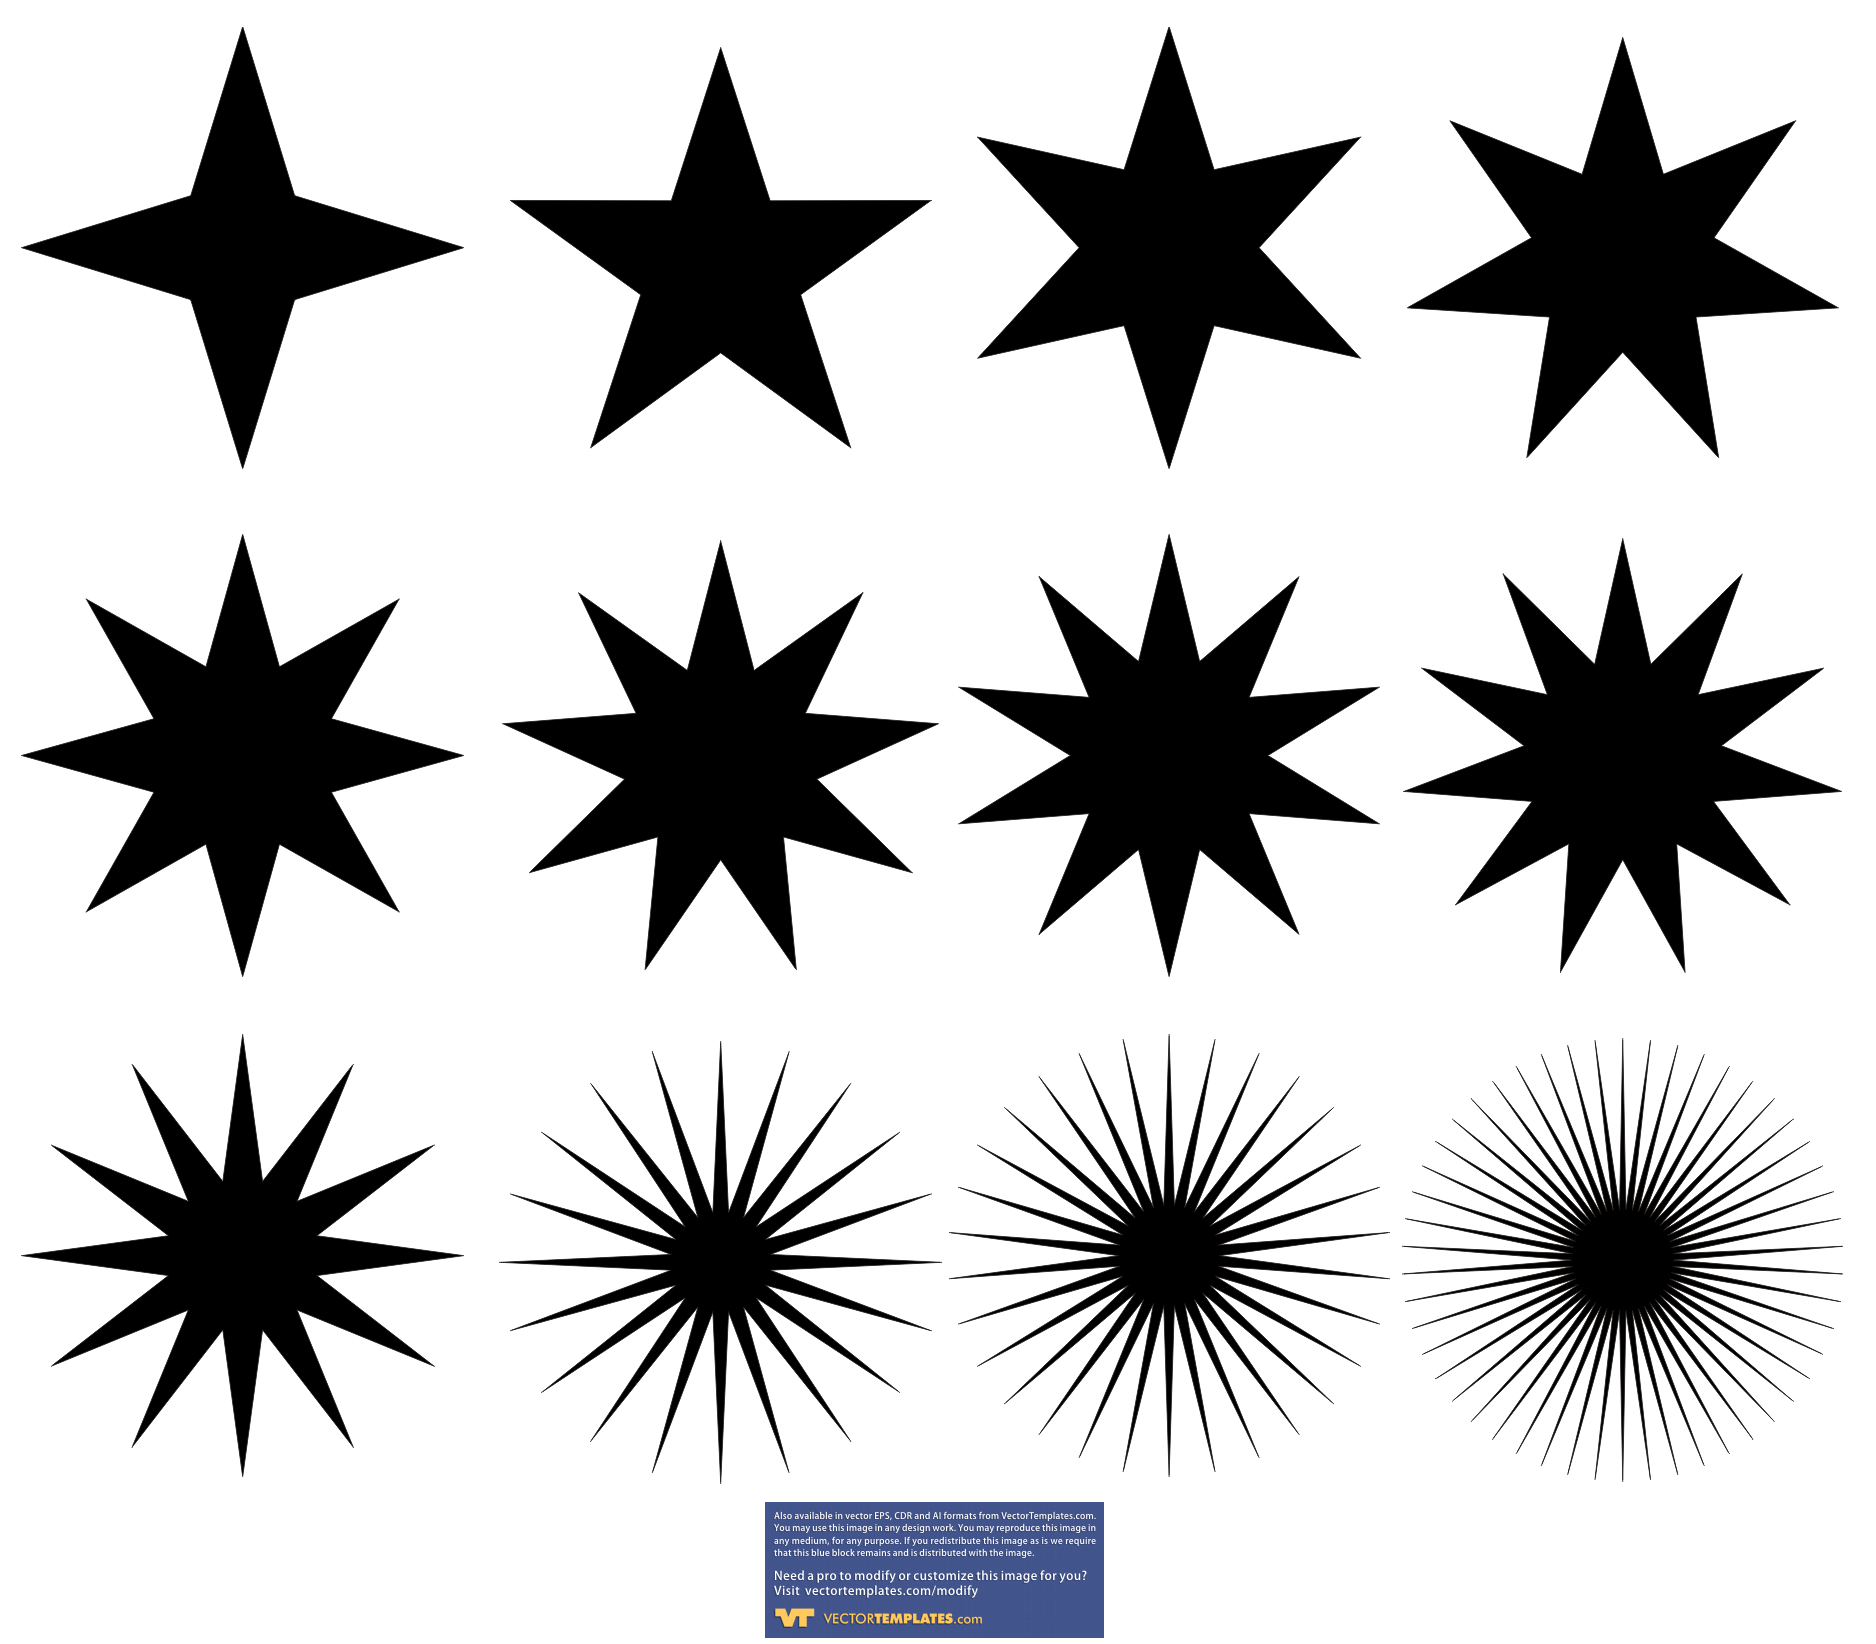 14 White-Flag Star Vector Images